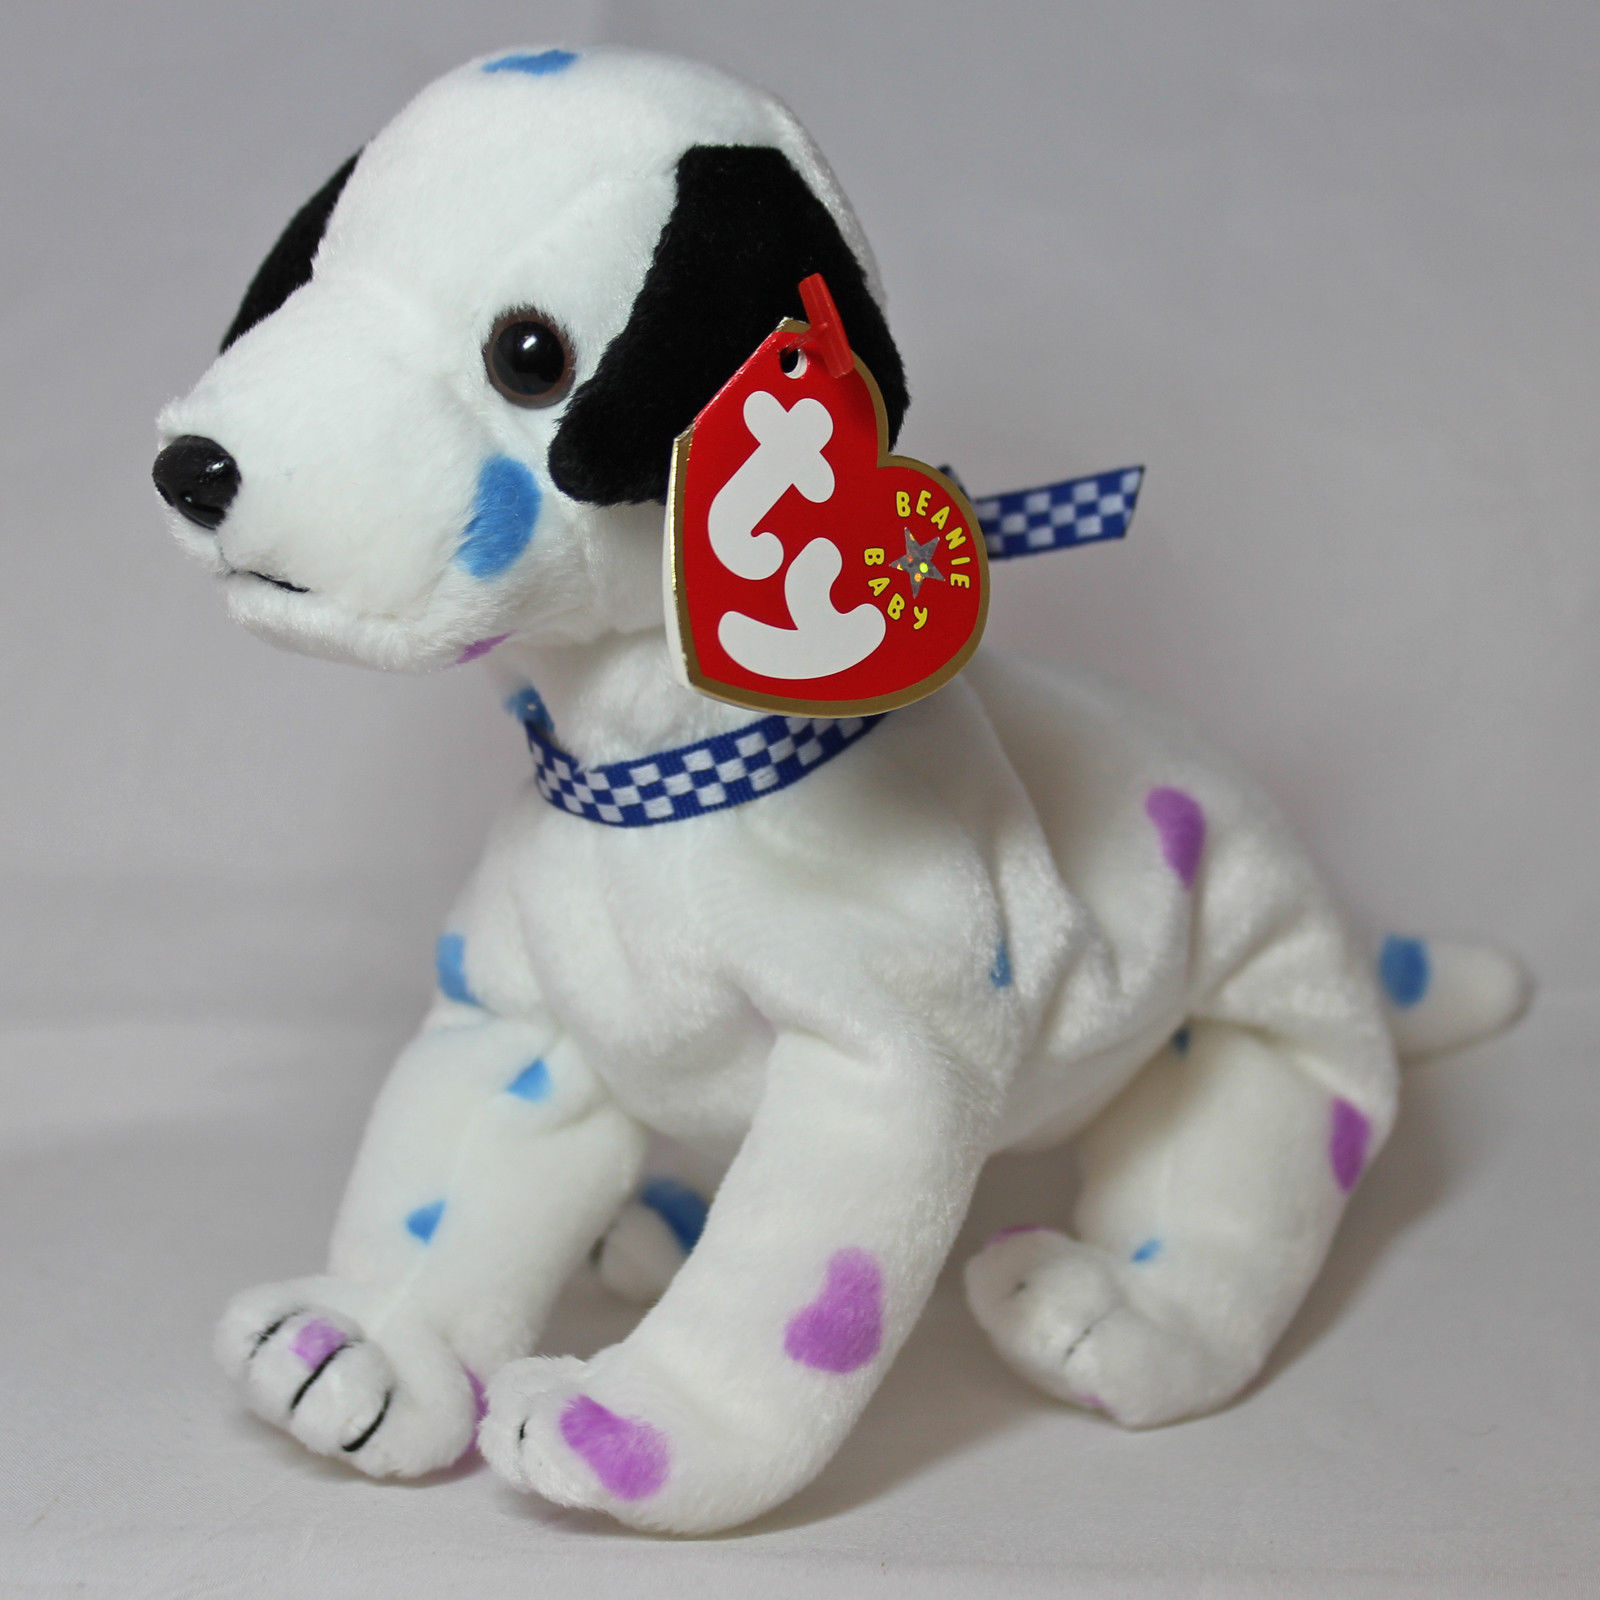 df951d56487 Ty Beanie Baby Dizzy - MWMT (Dog w  Colored Ears   Colored Spots) 2 2 of 2  See More